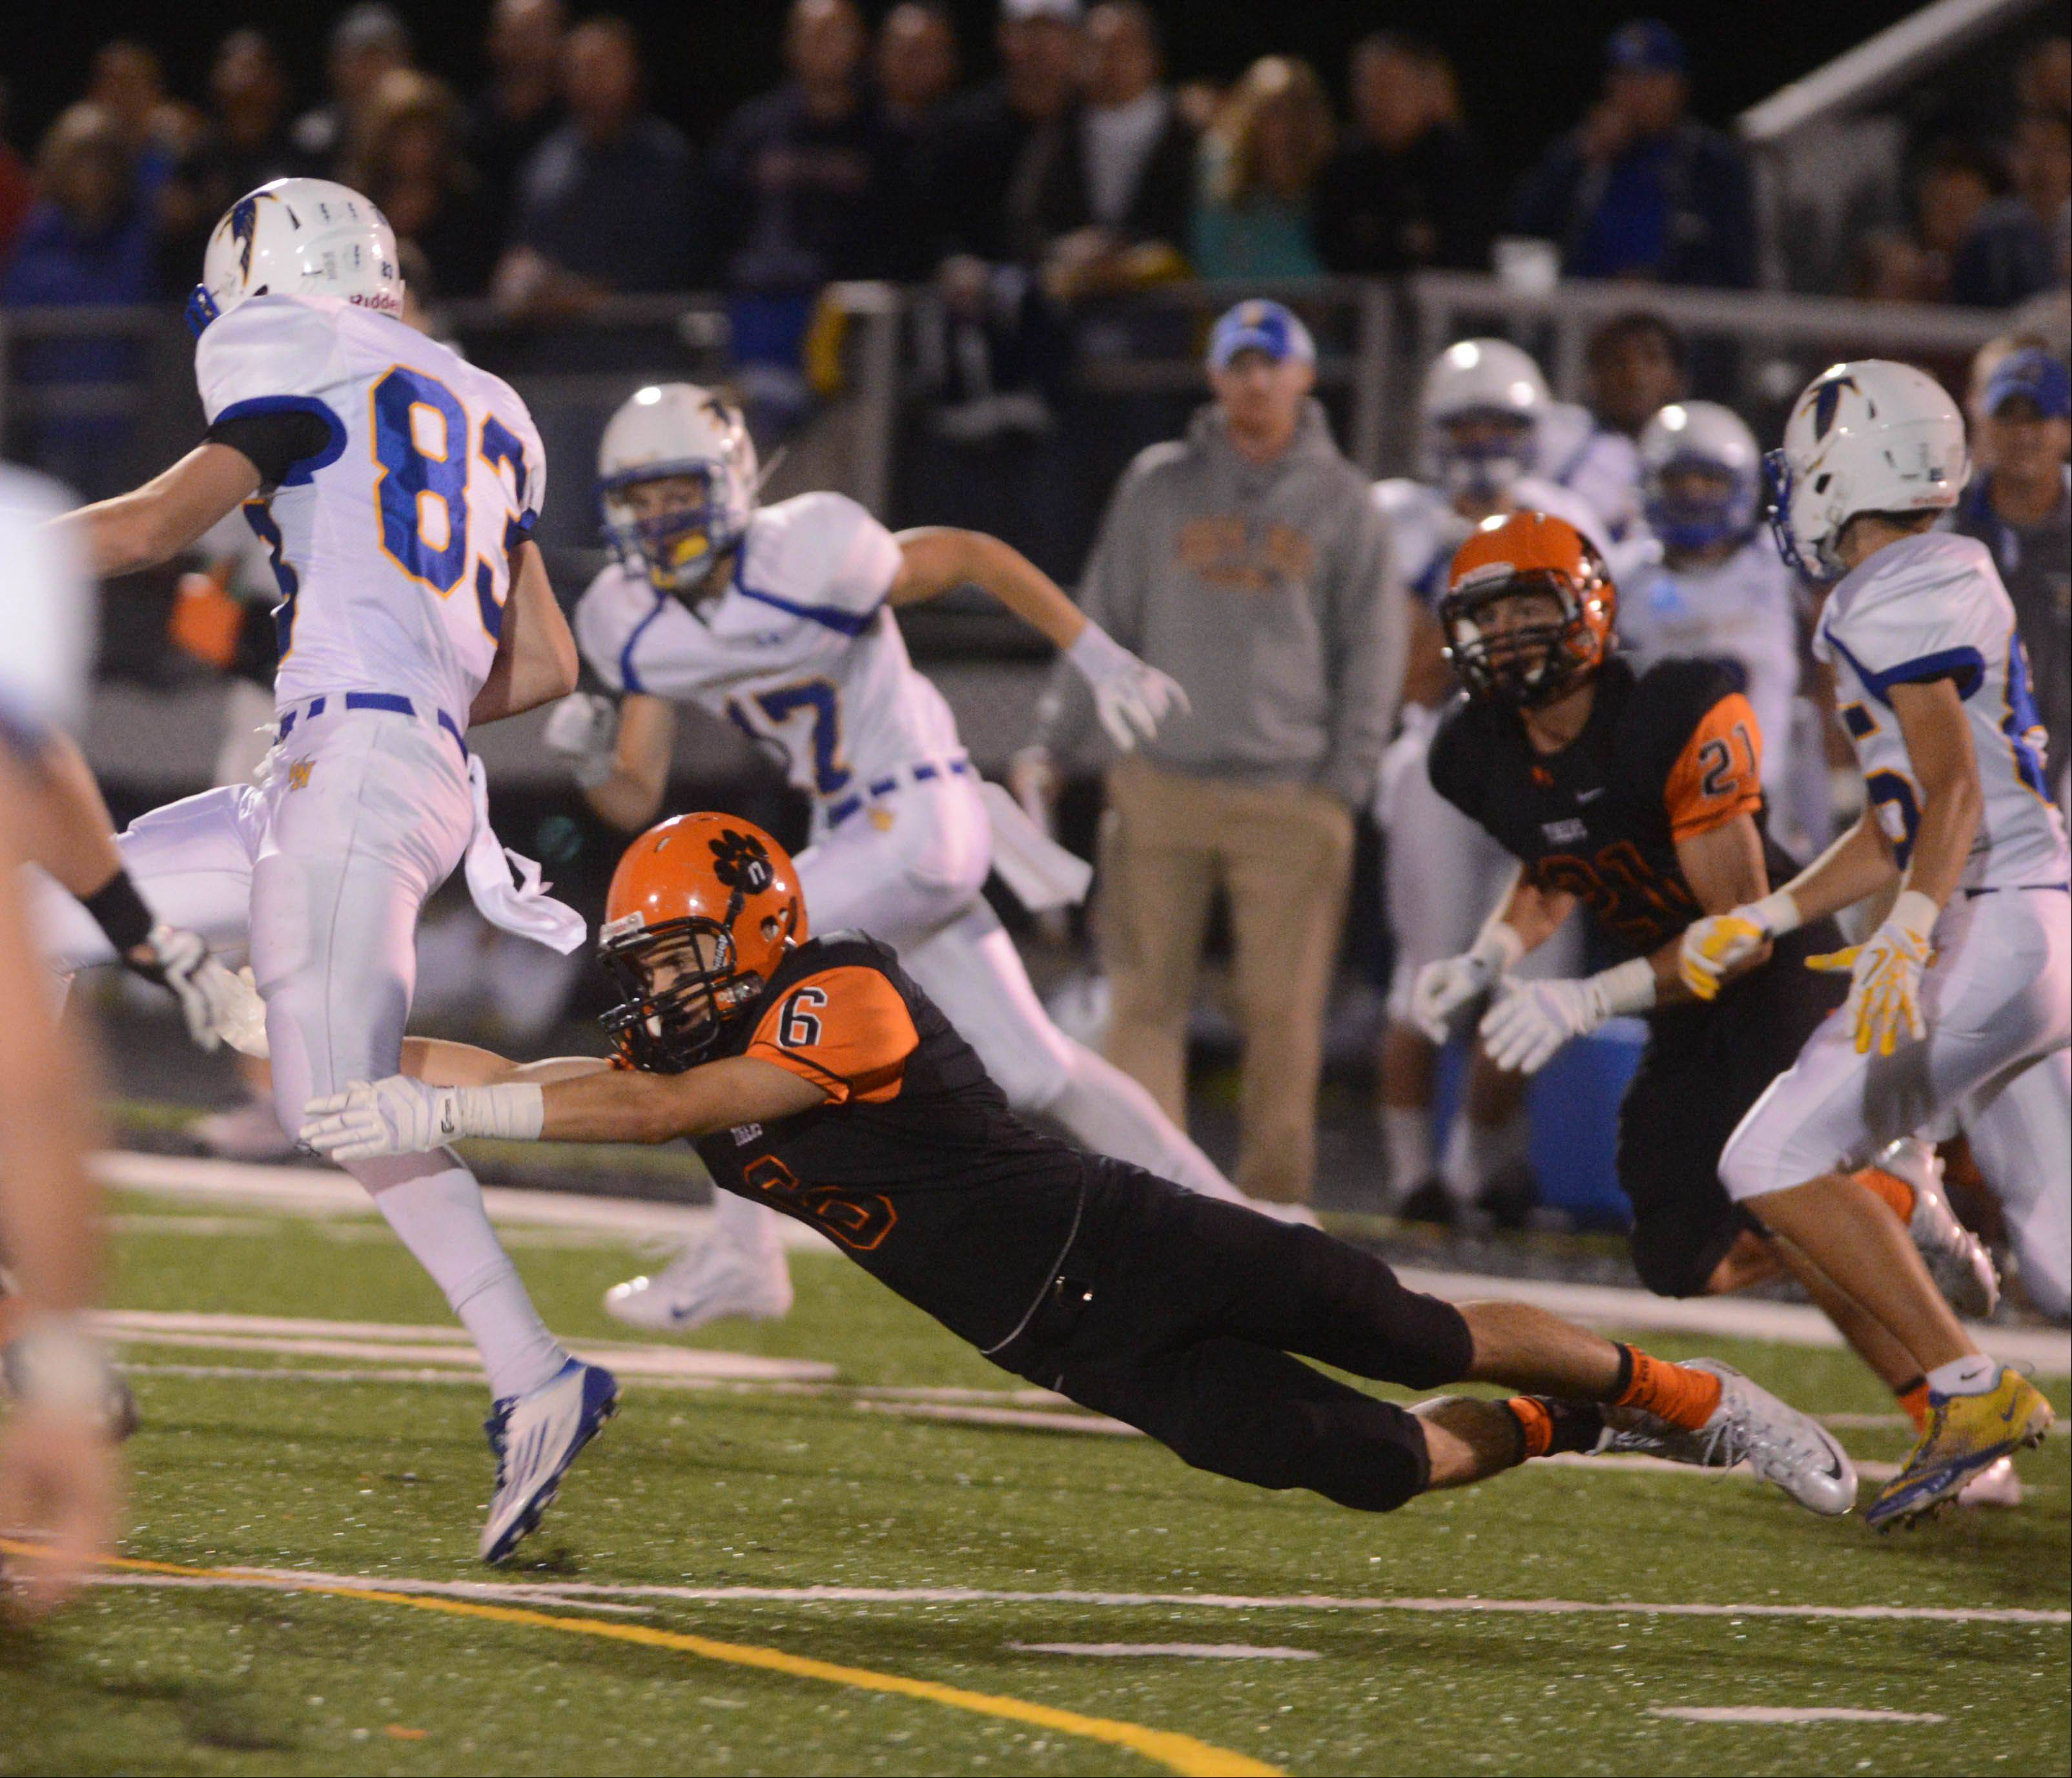 Dan Knight of Wheaton North is pulled down by Mike Cerone of Wheaton Warrenville South .